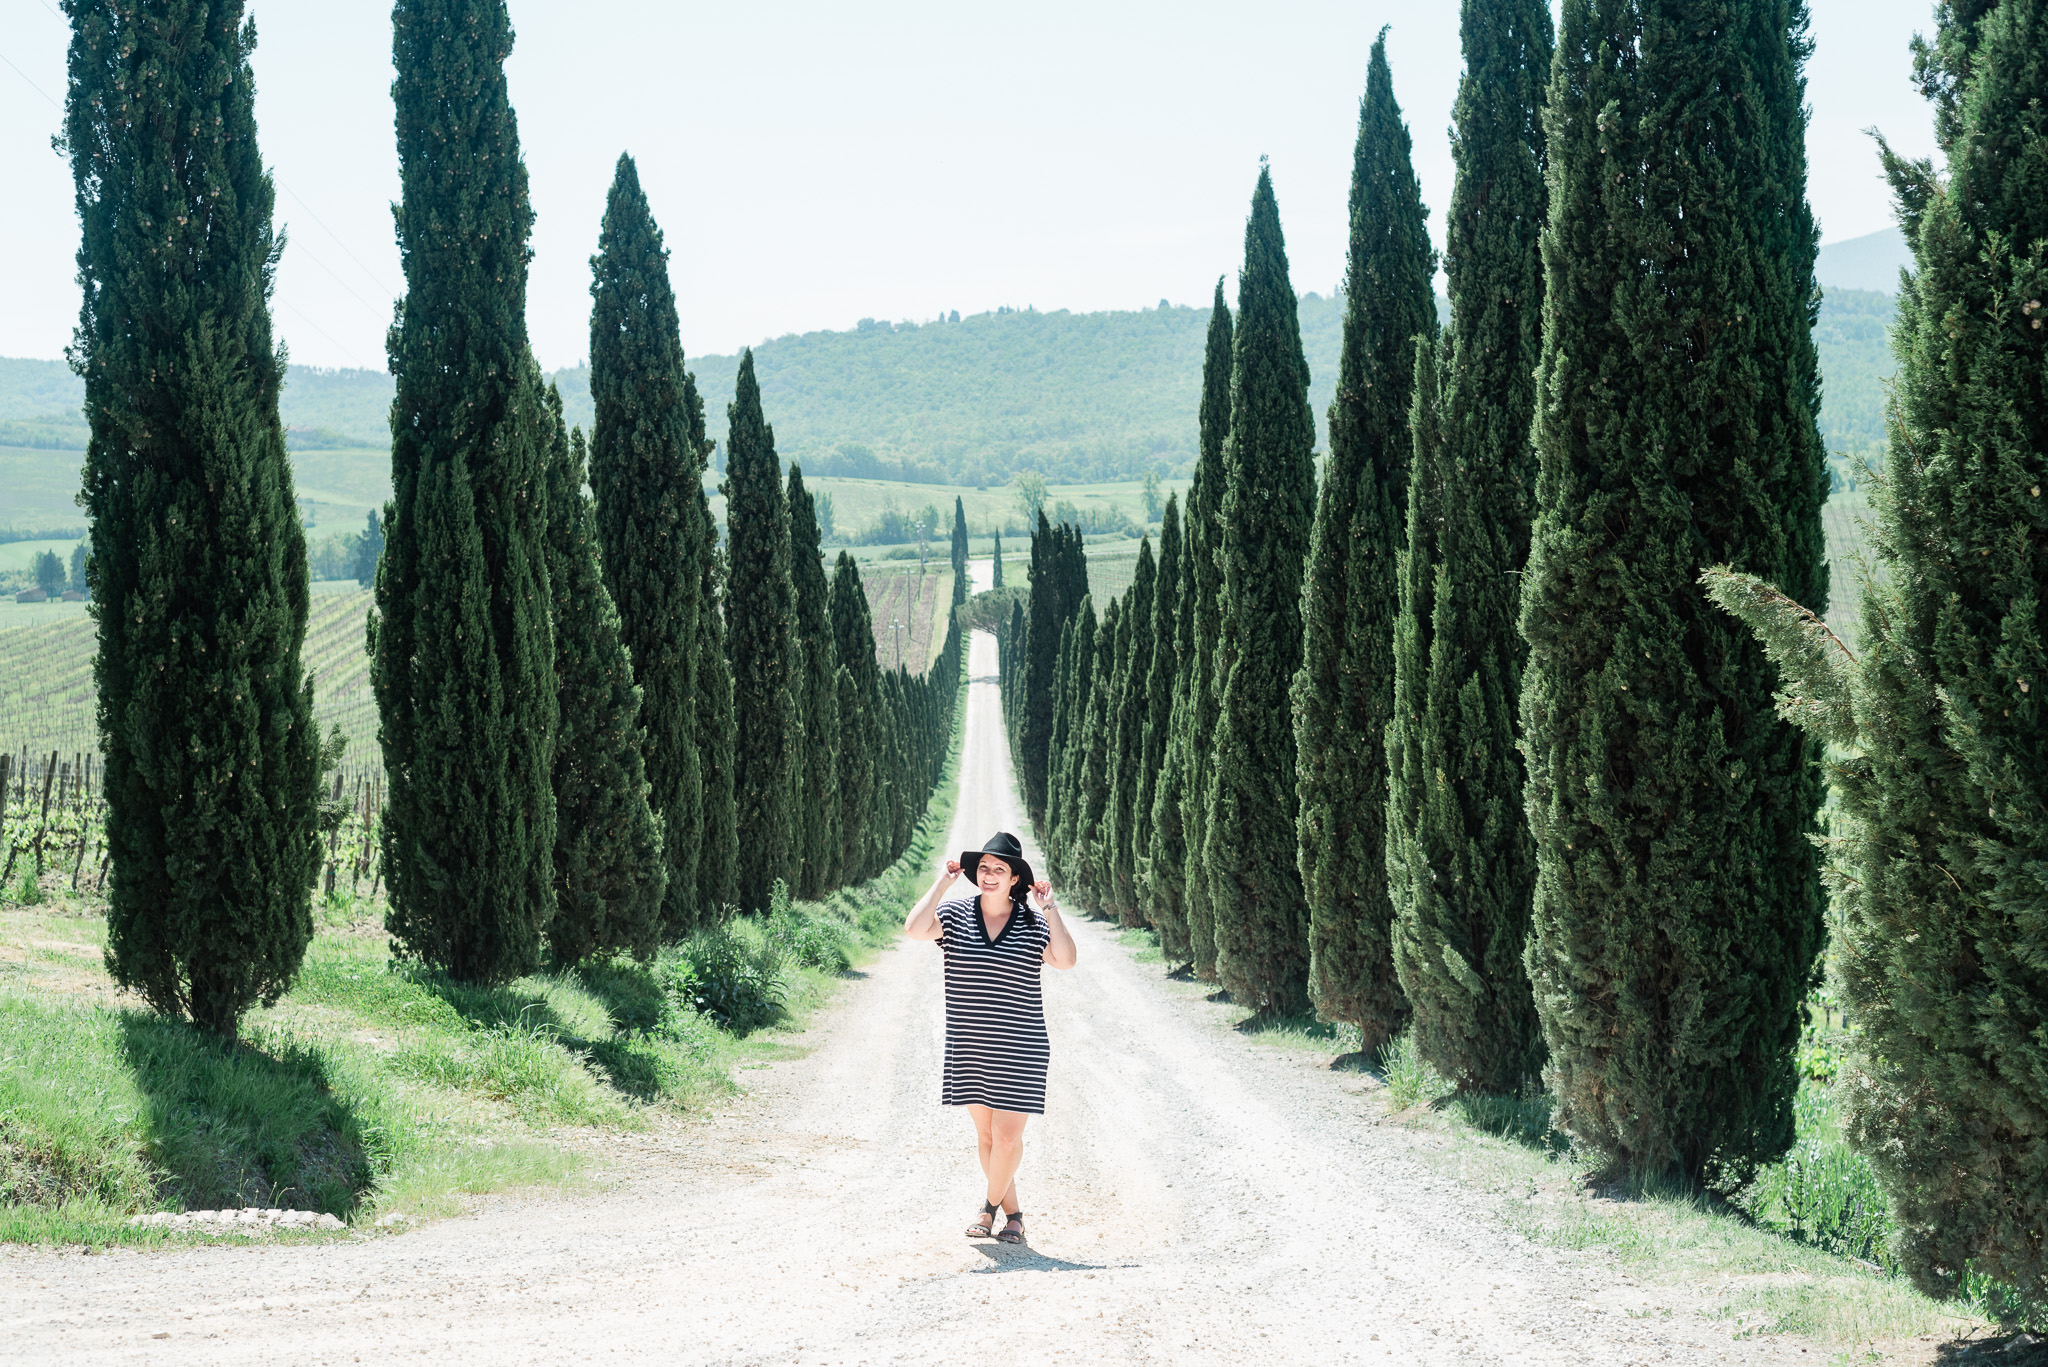 Cypress Trees in Tuscany, Italy  | Two Weeks in Italy by Jenn Kavanagh Photography